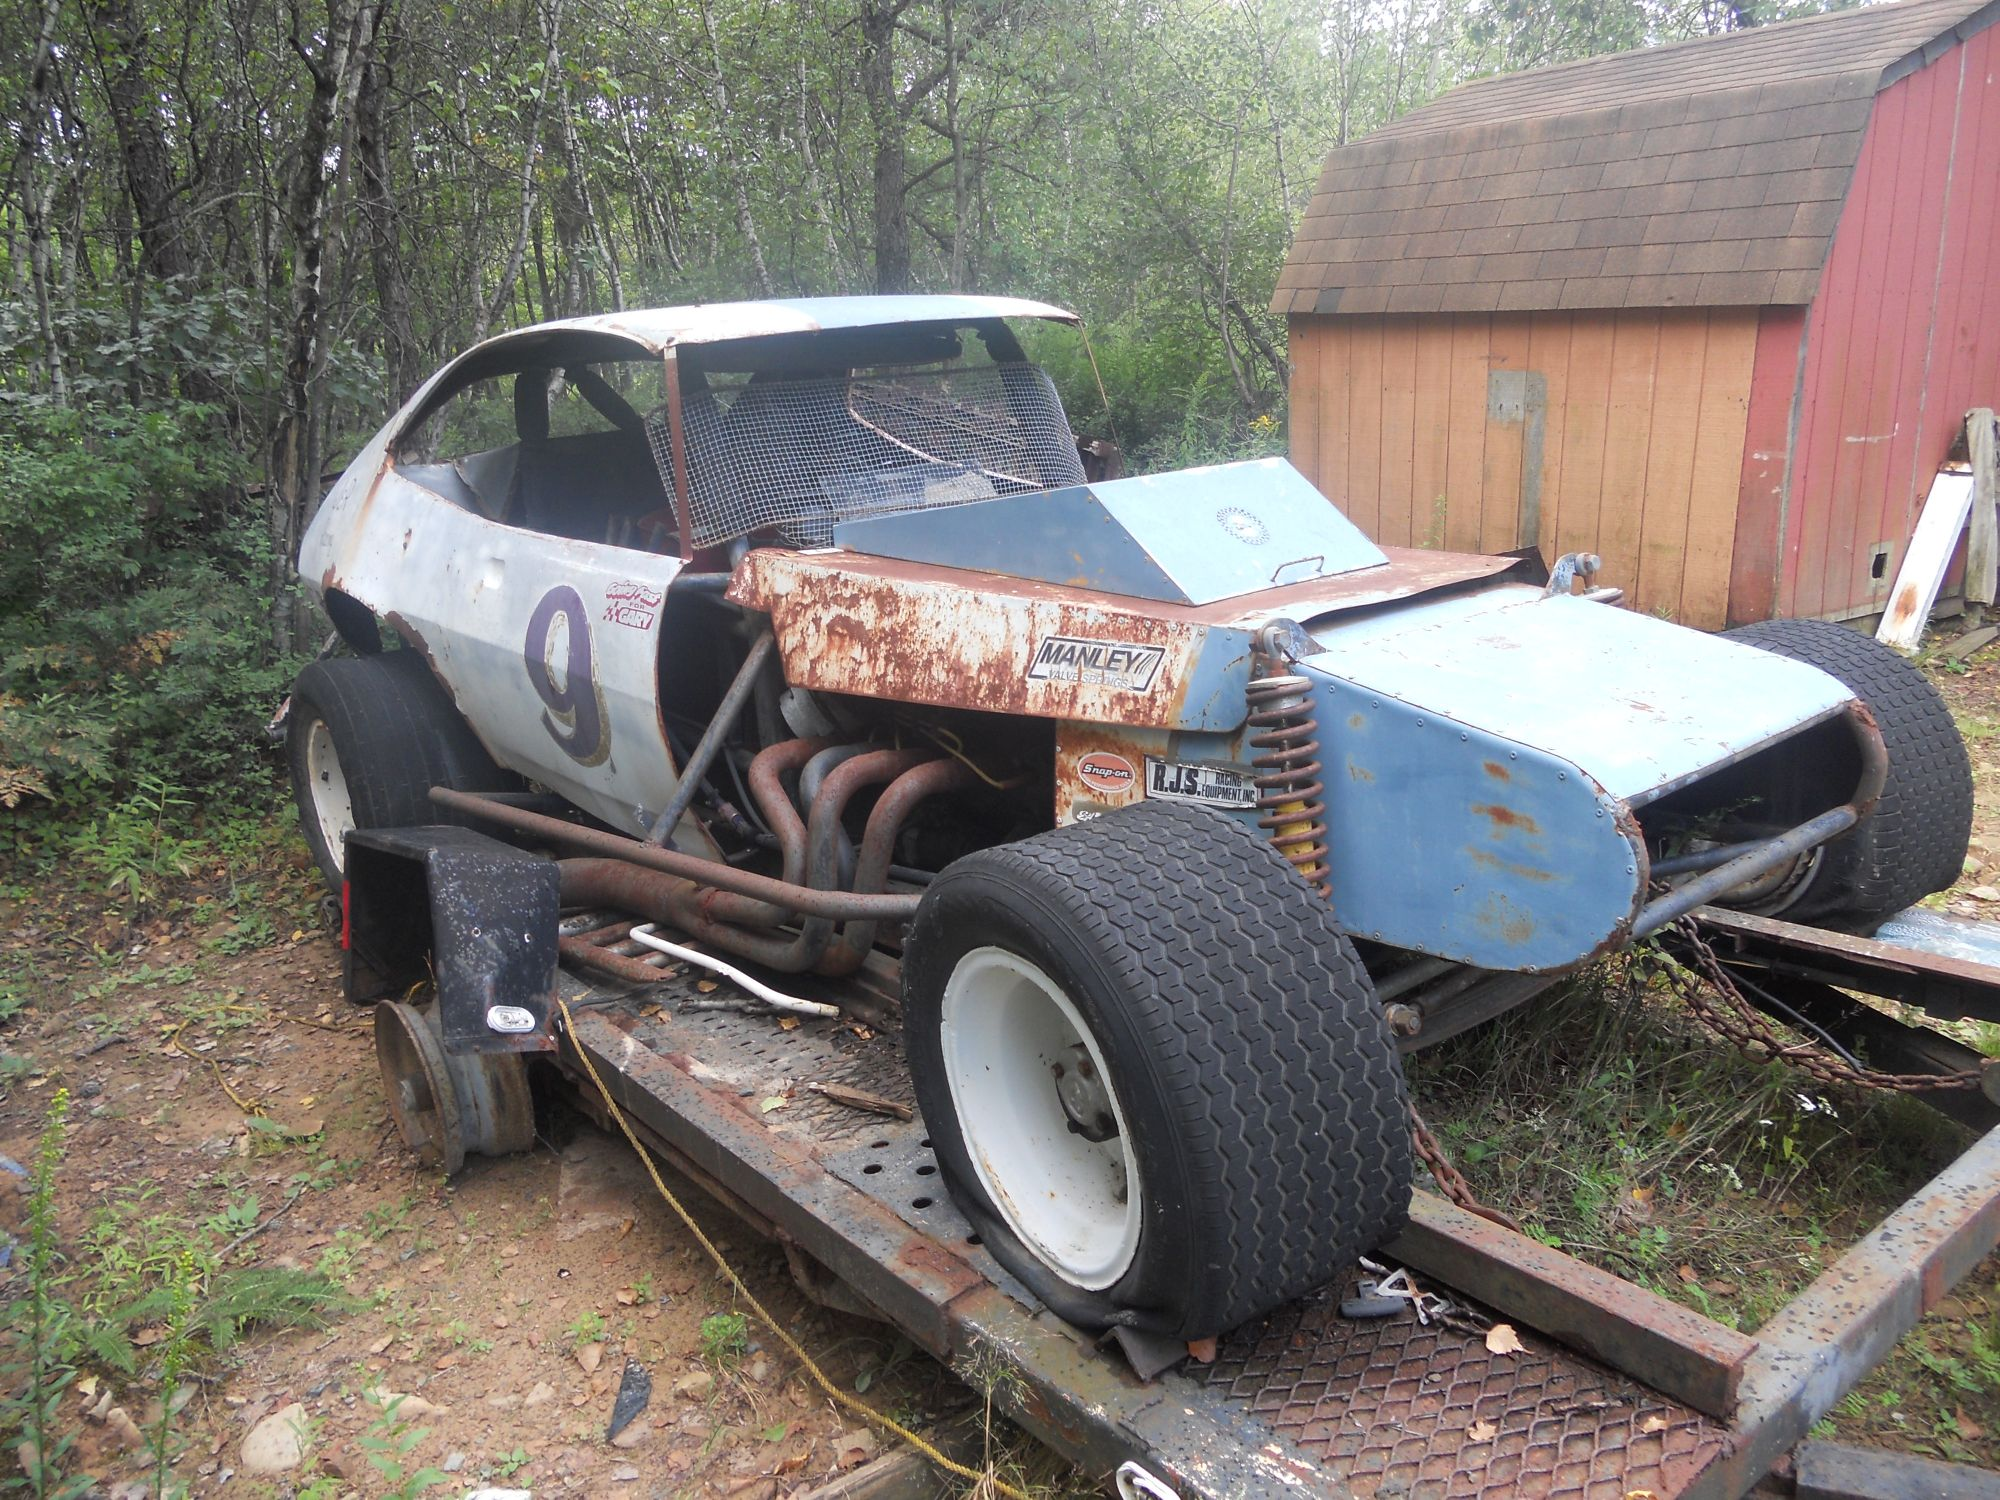 1977 PINTO MODIFIED RACE CAR - For Sale - Cars & Trucks